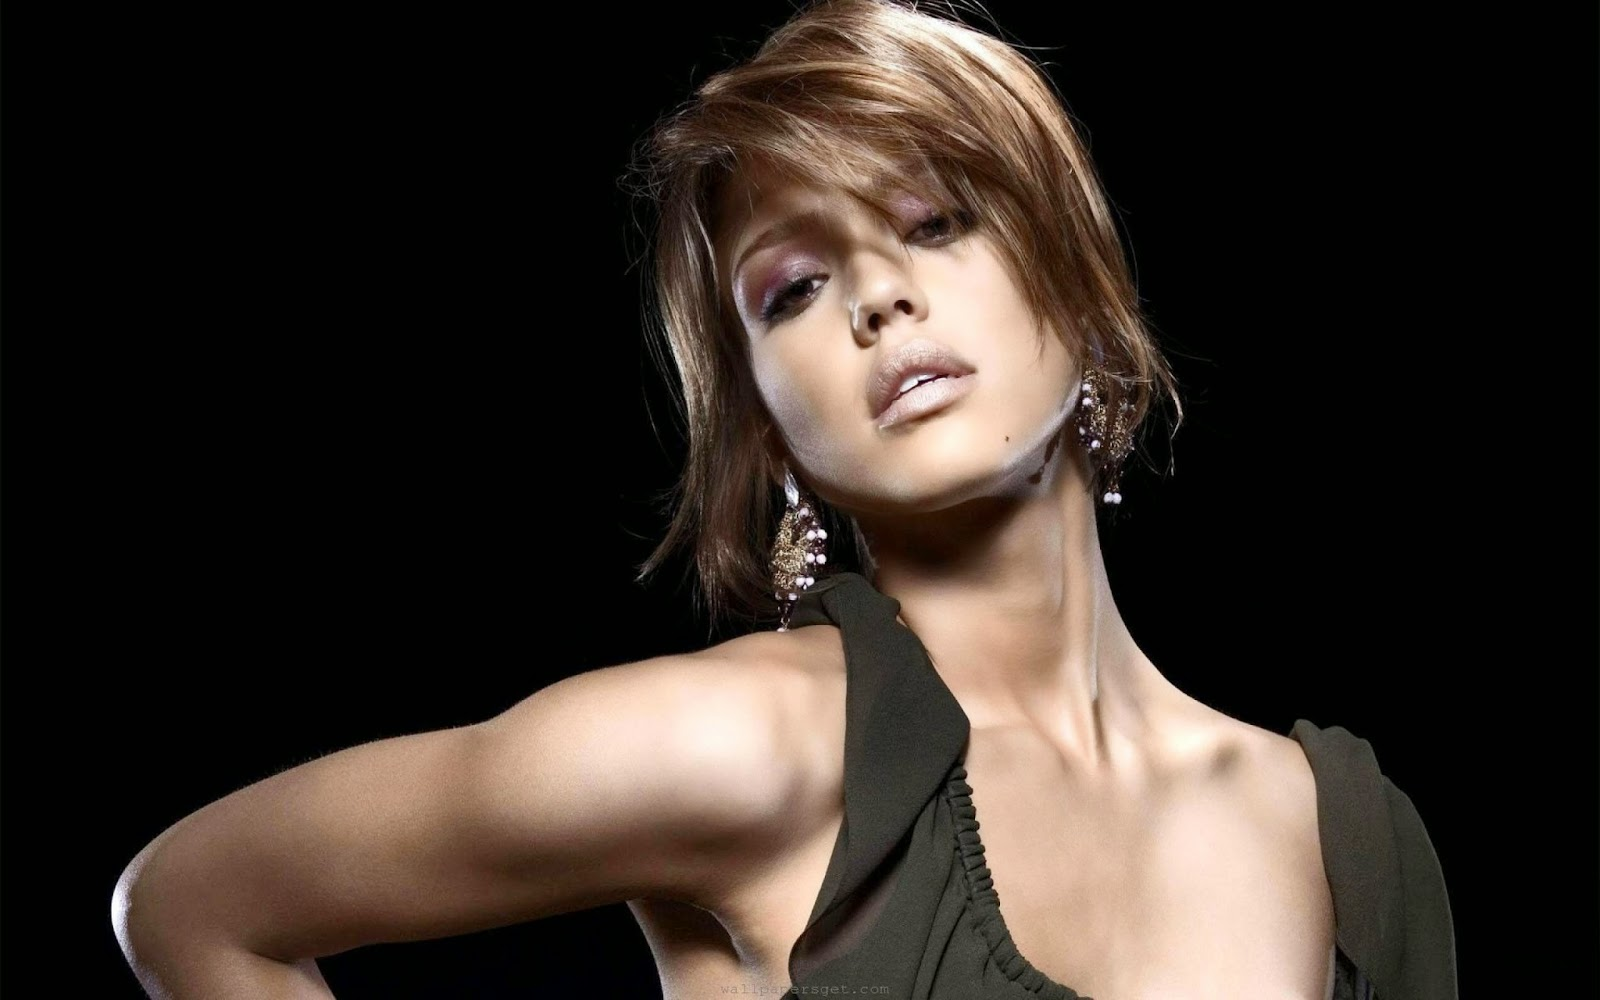 Jessica alba hot hair style hd wallpaper